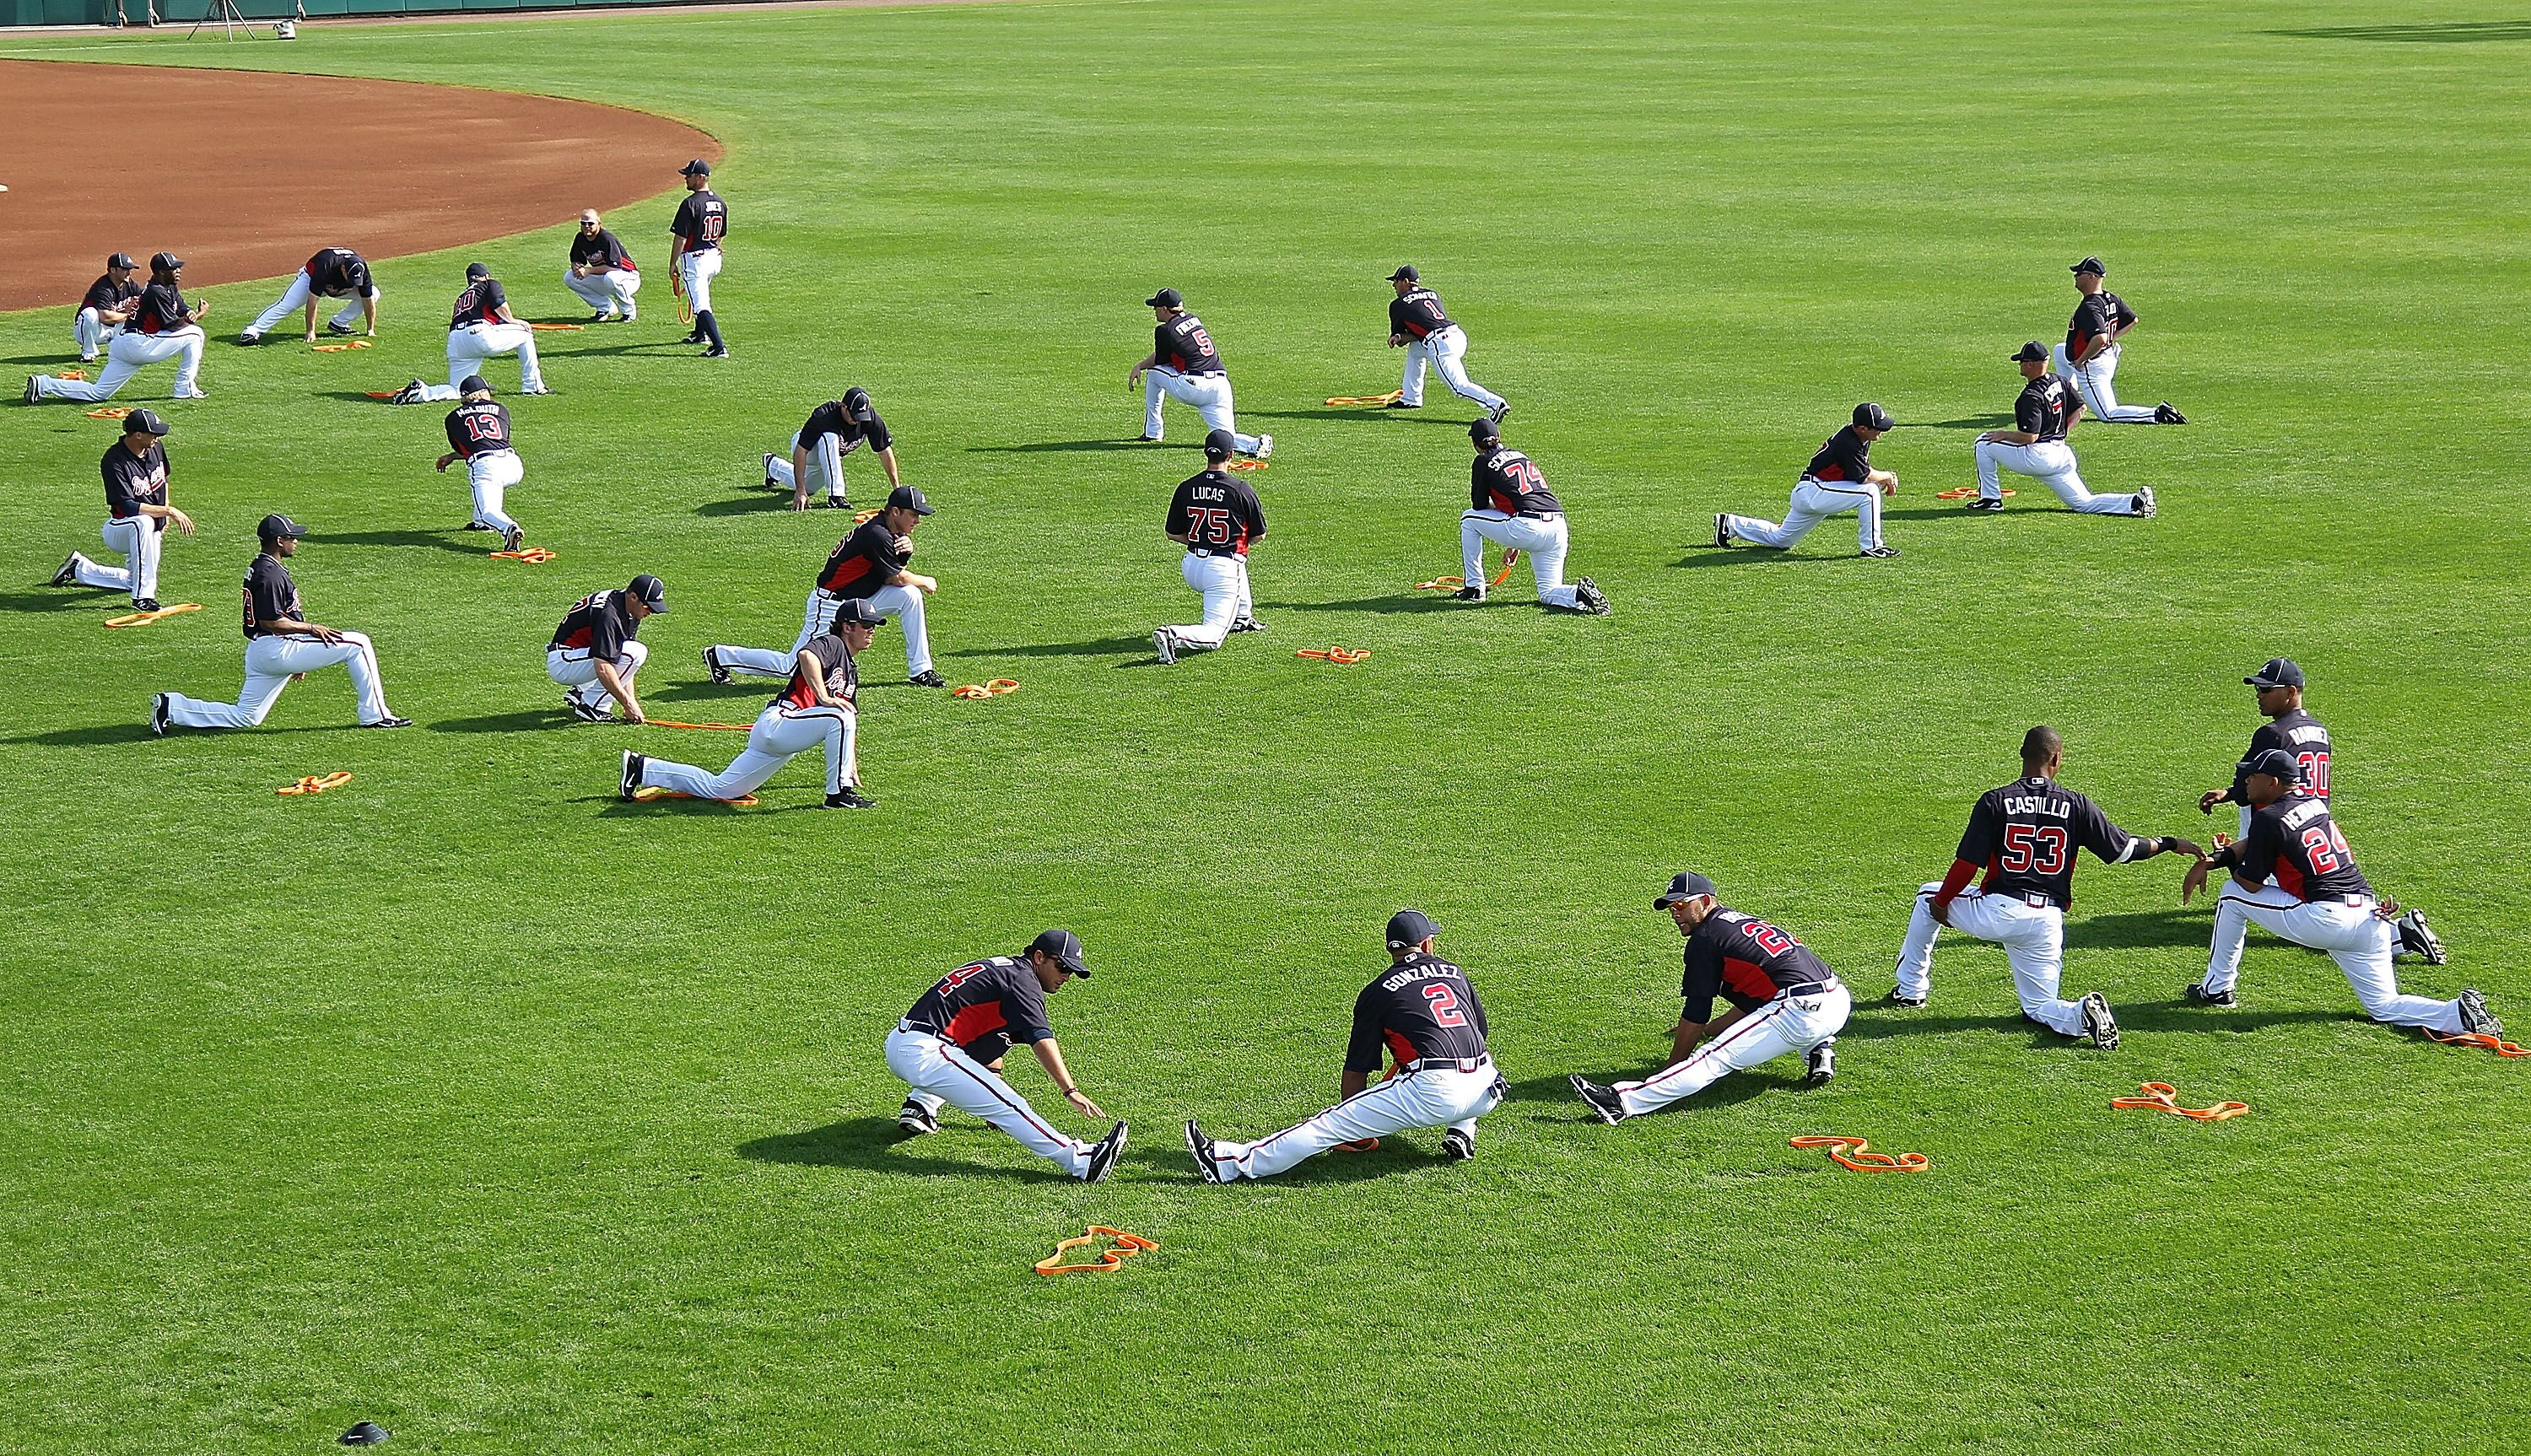 Atlanta Braves Midseason Farm Report: Top performers of the 1st Half